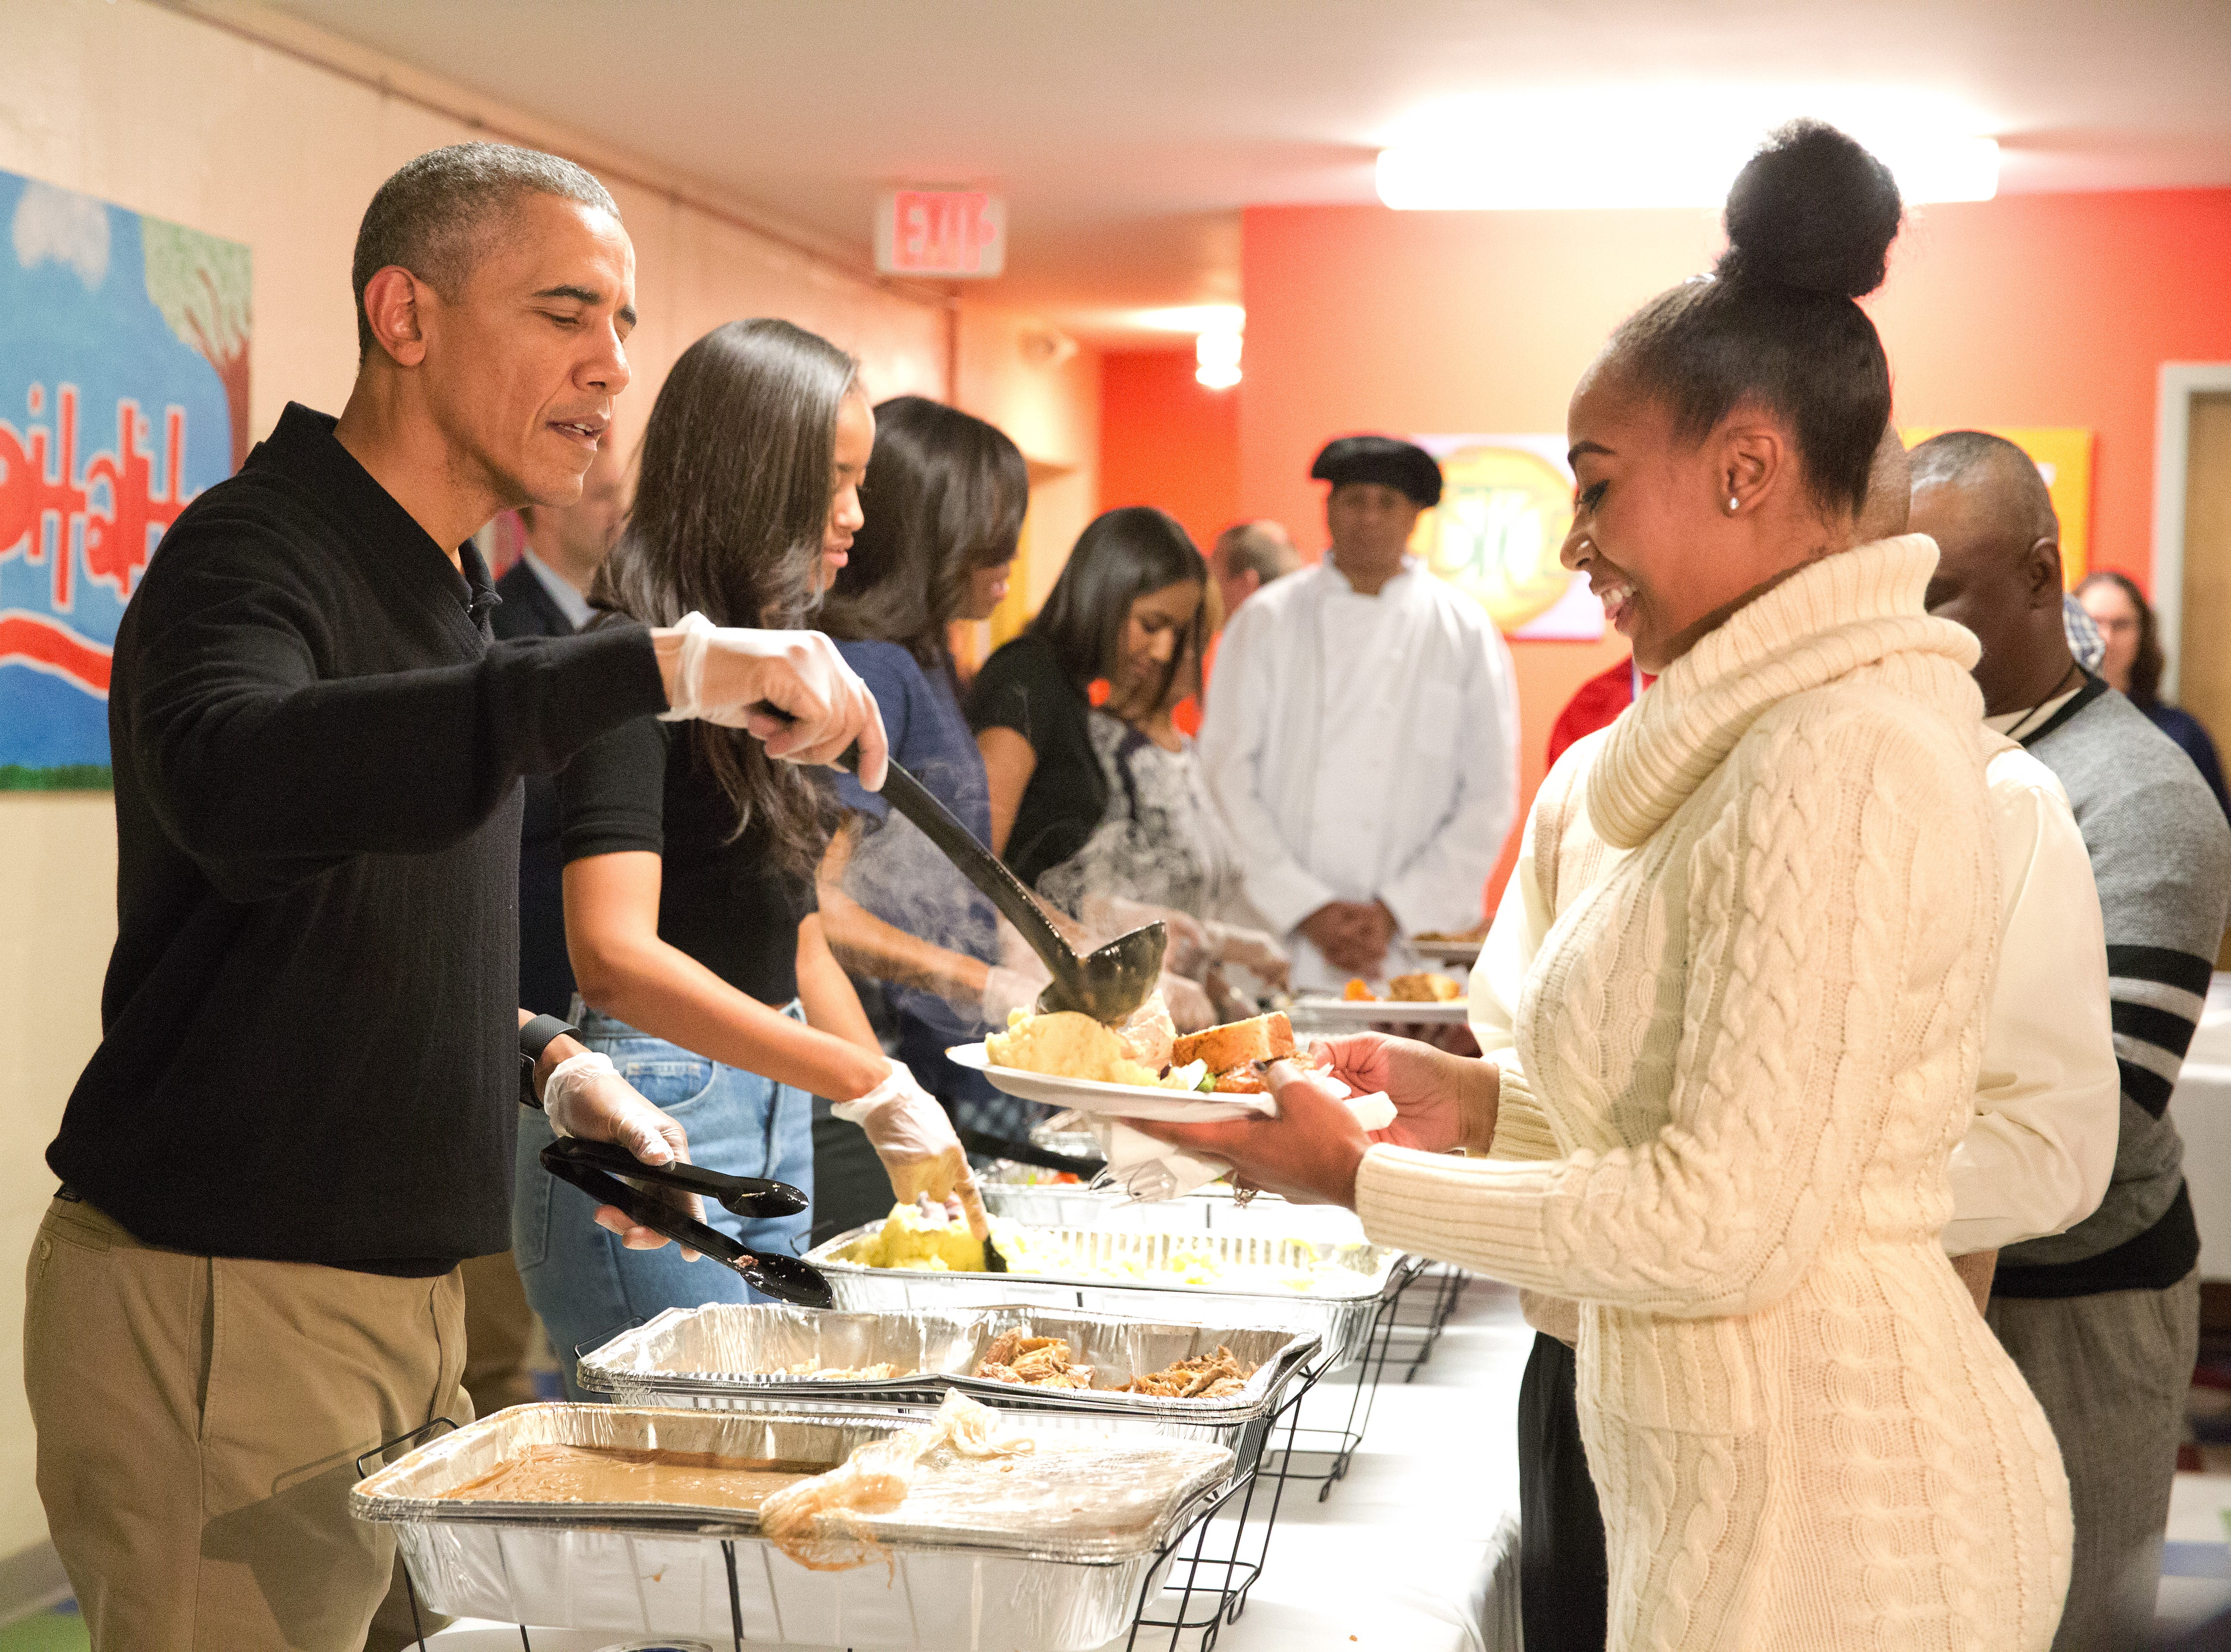 Chicago food bank gets hand from Barack Obama with Thanksgiving prep